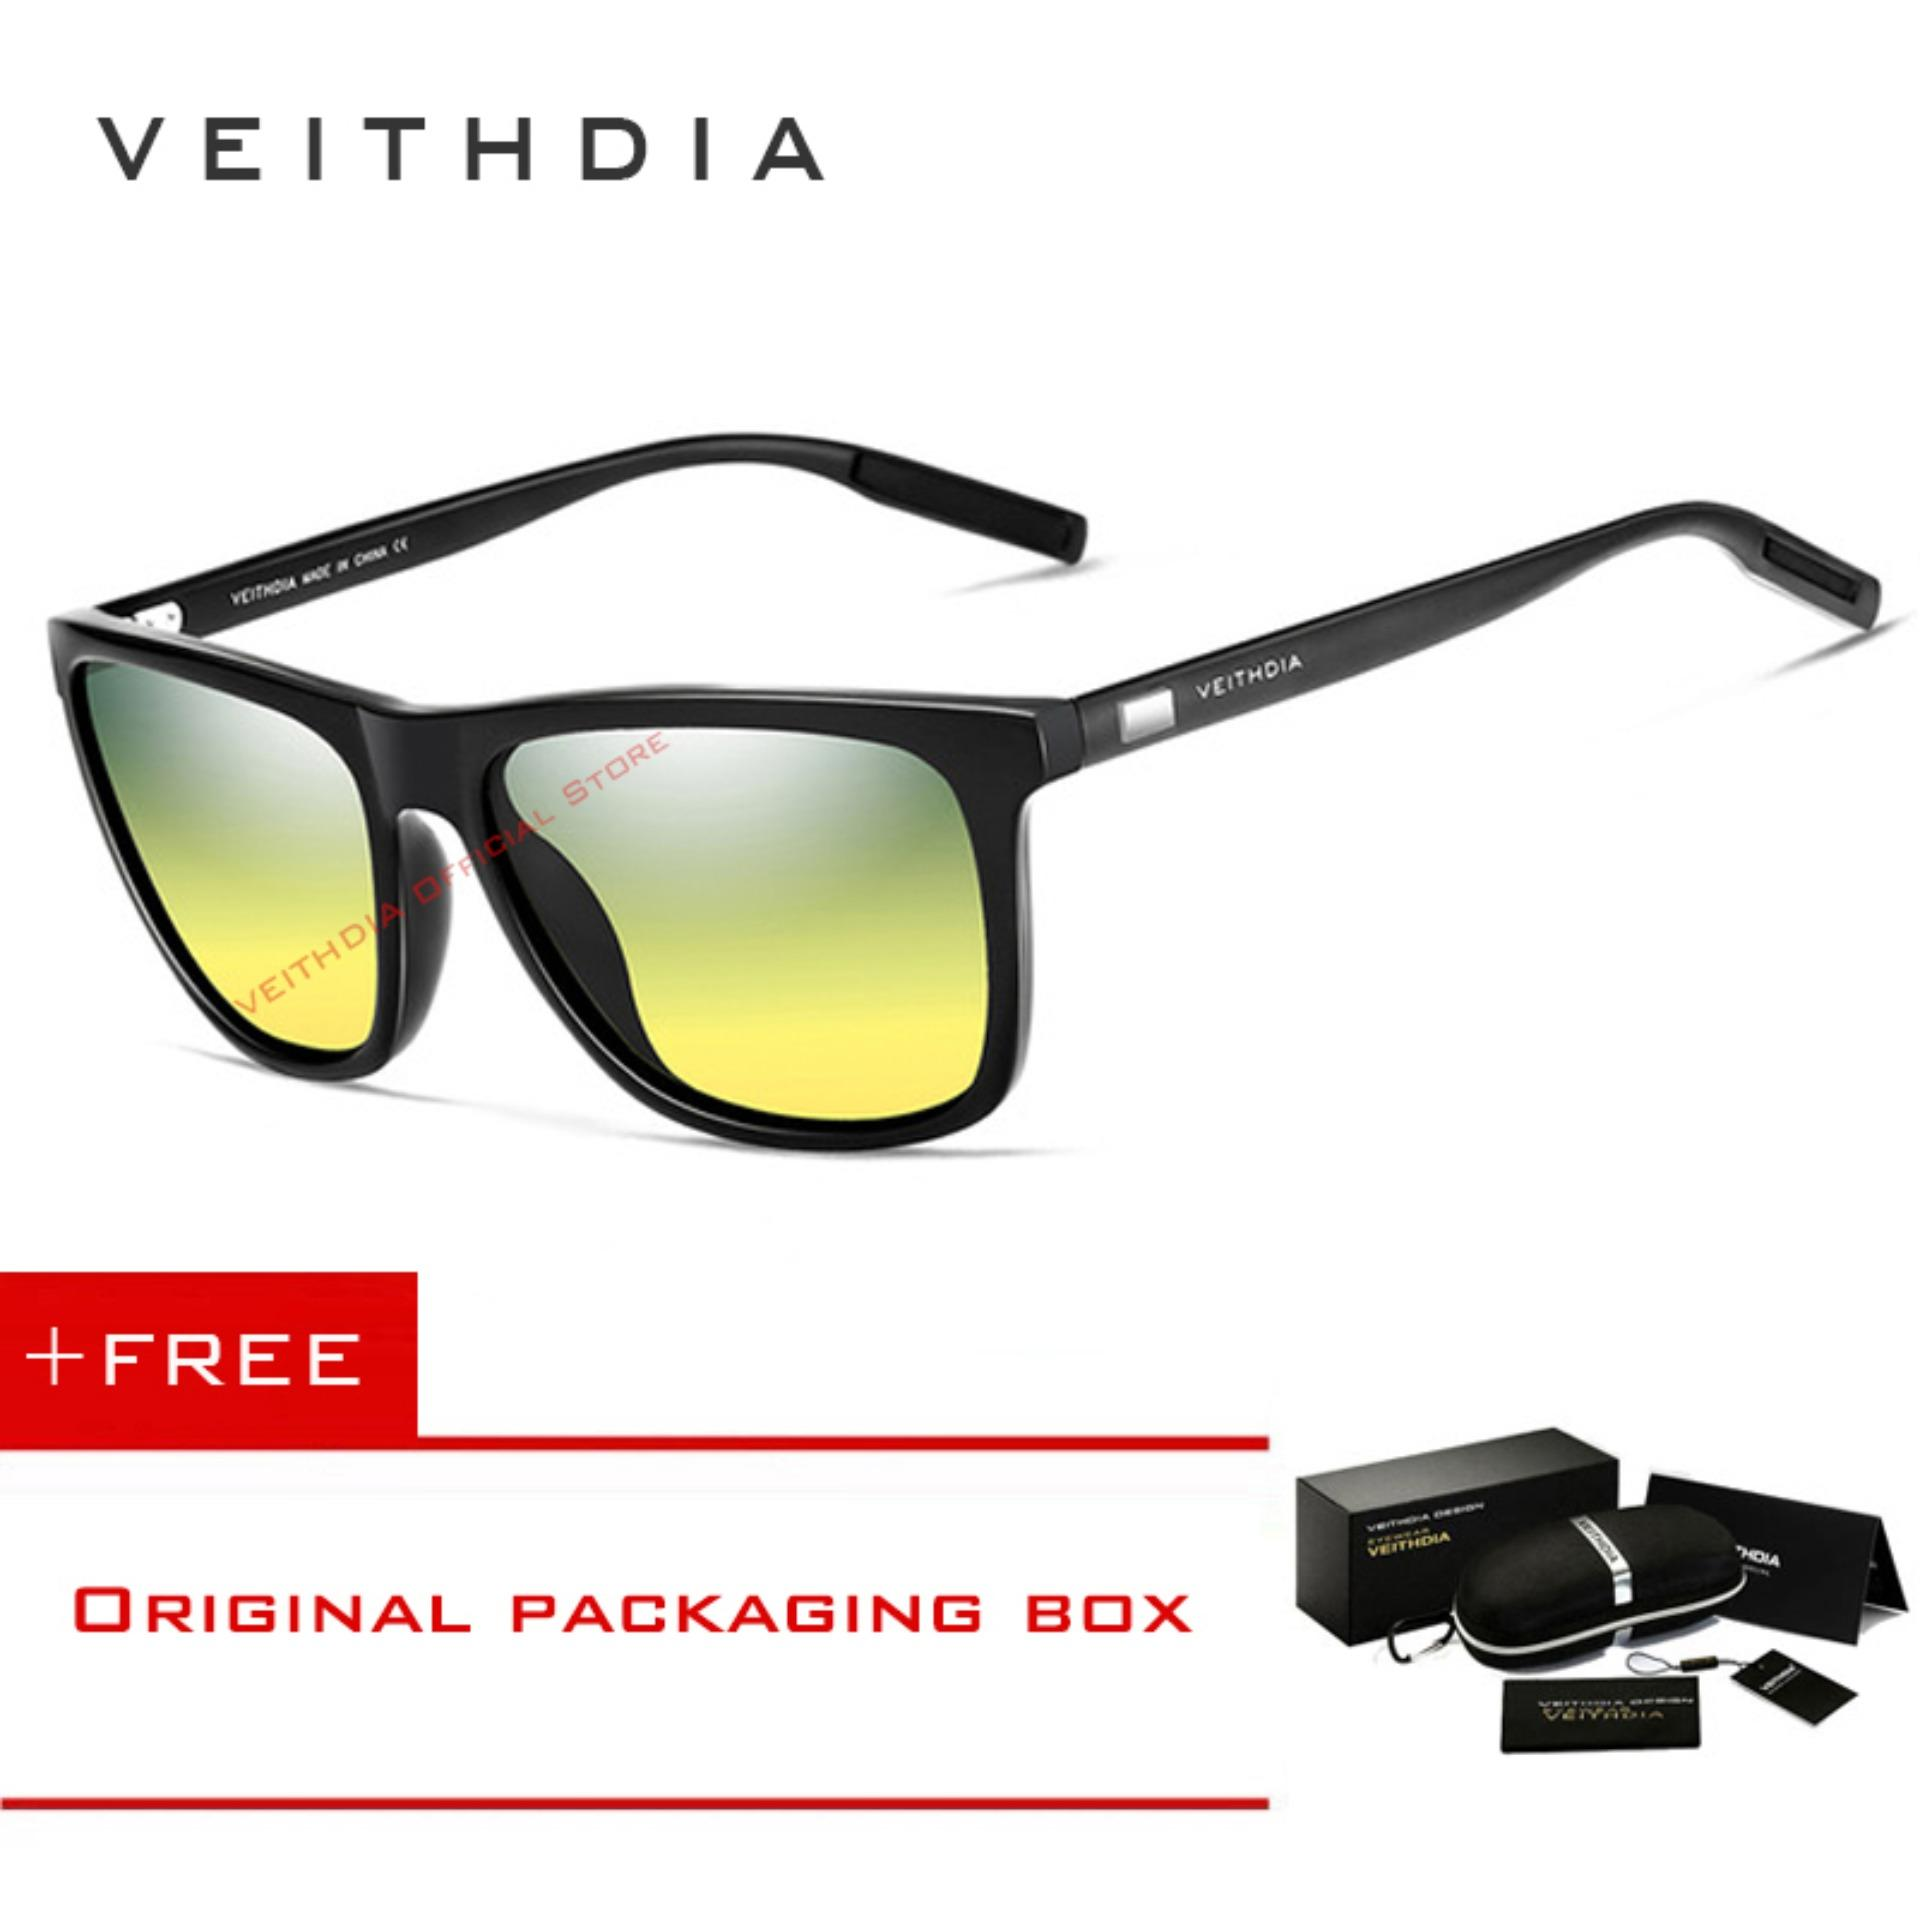 cd59d60784d VEITHDIA Unisex Aluminum+TR90 Sunglasses Polarized Lens Vintage Eyewear  Accessories Sun Glasses For Men